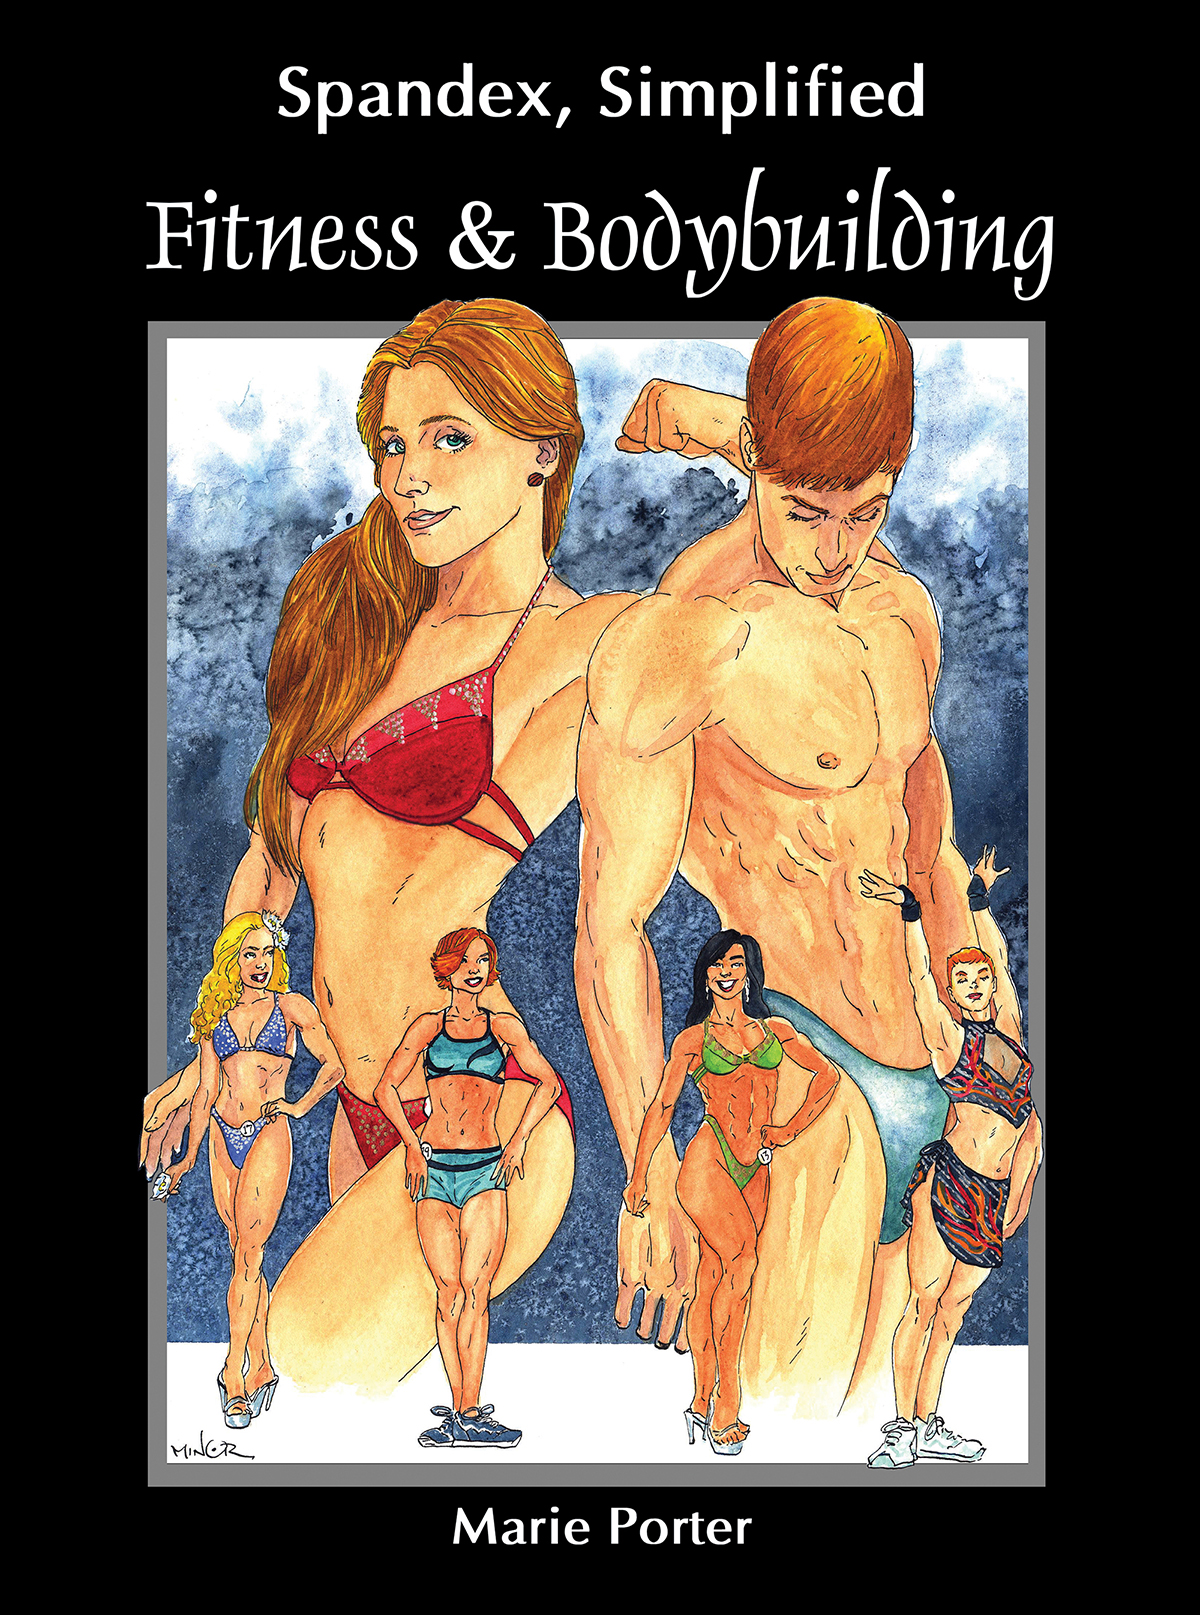 The cover image for Fitness & Bodybuilding. A watercolour image of various fitness competitors, against a black background.